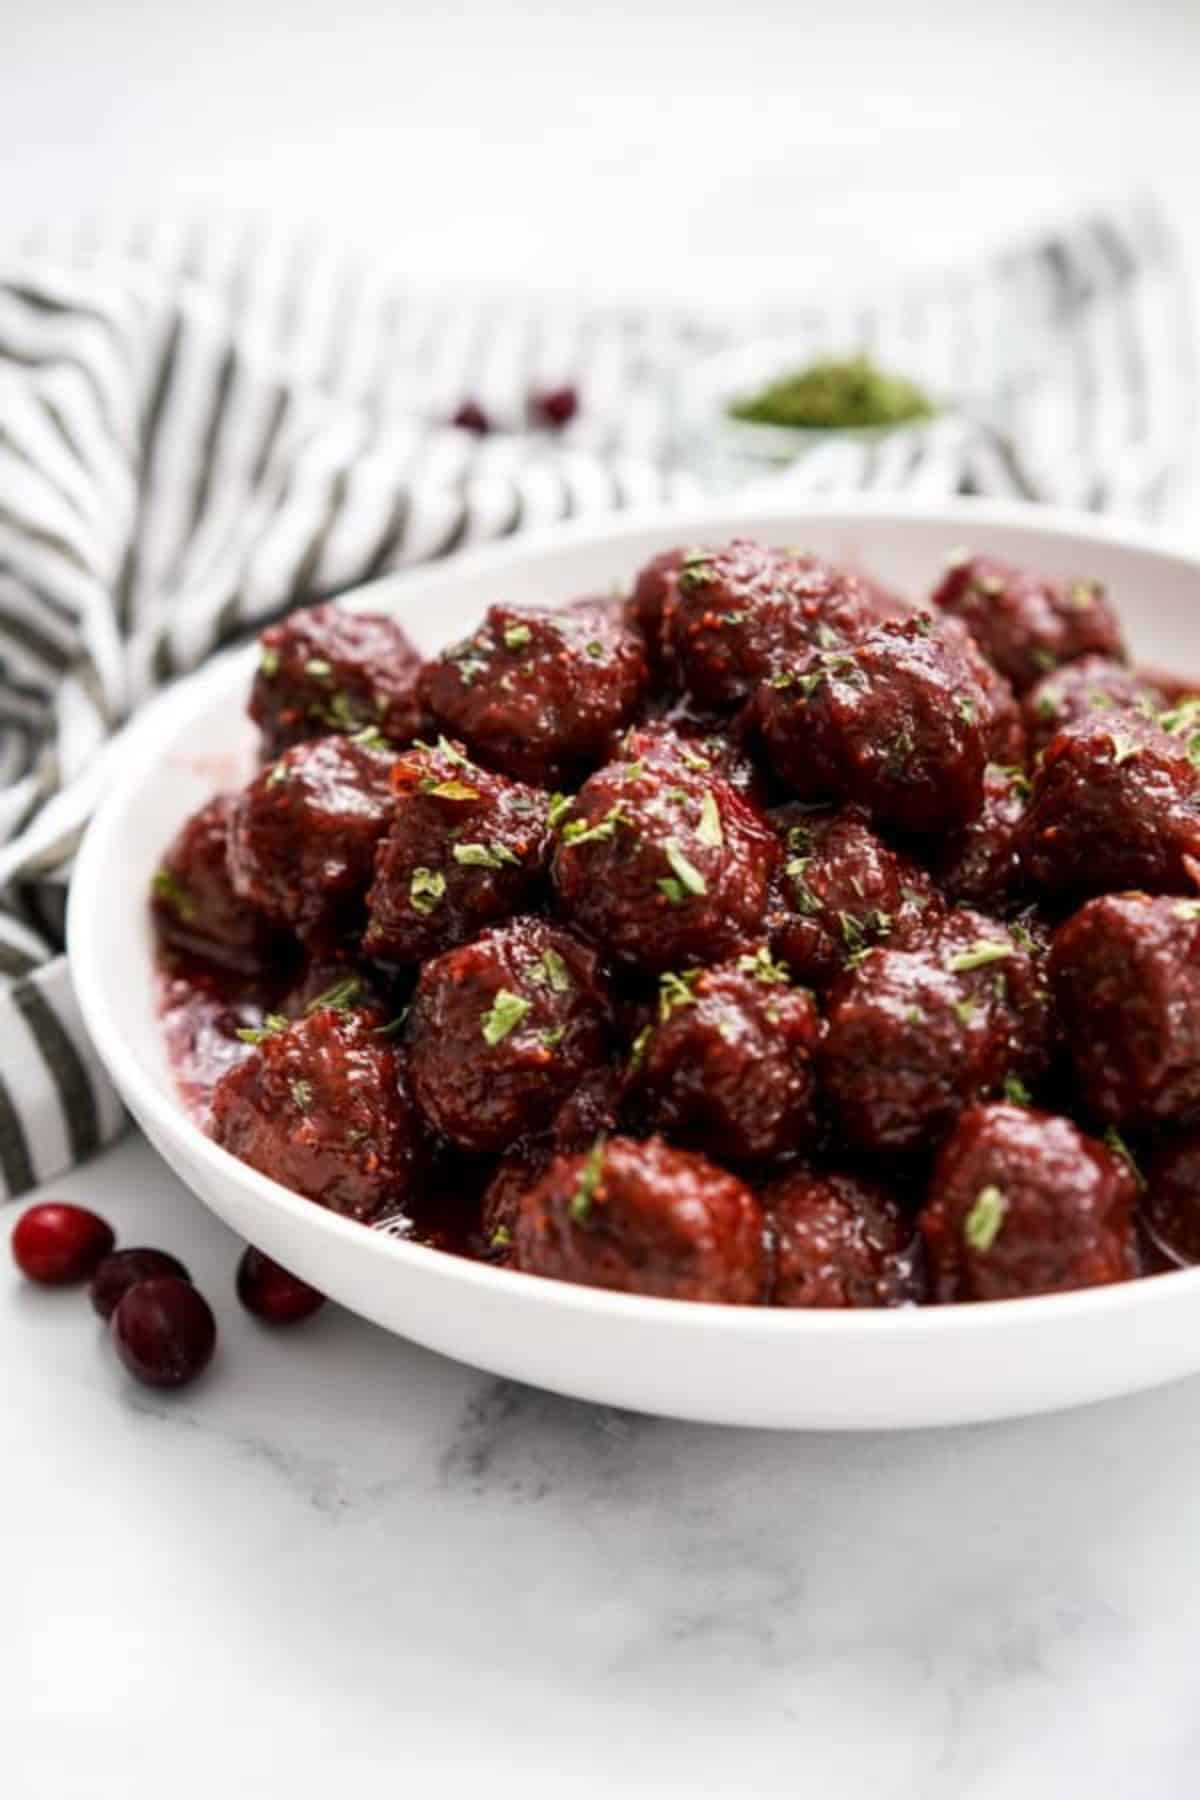 Cranberry meatballs in a white bowl